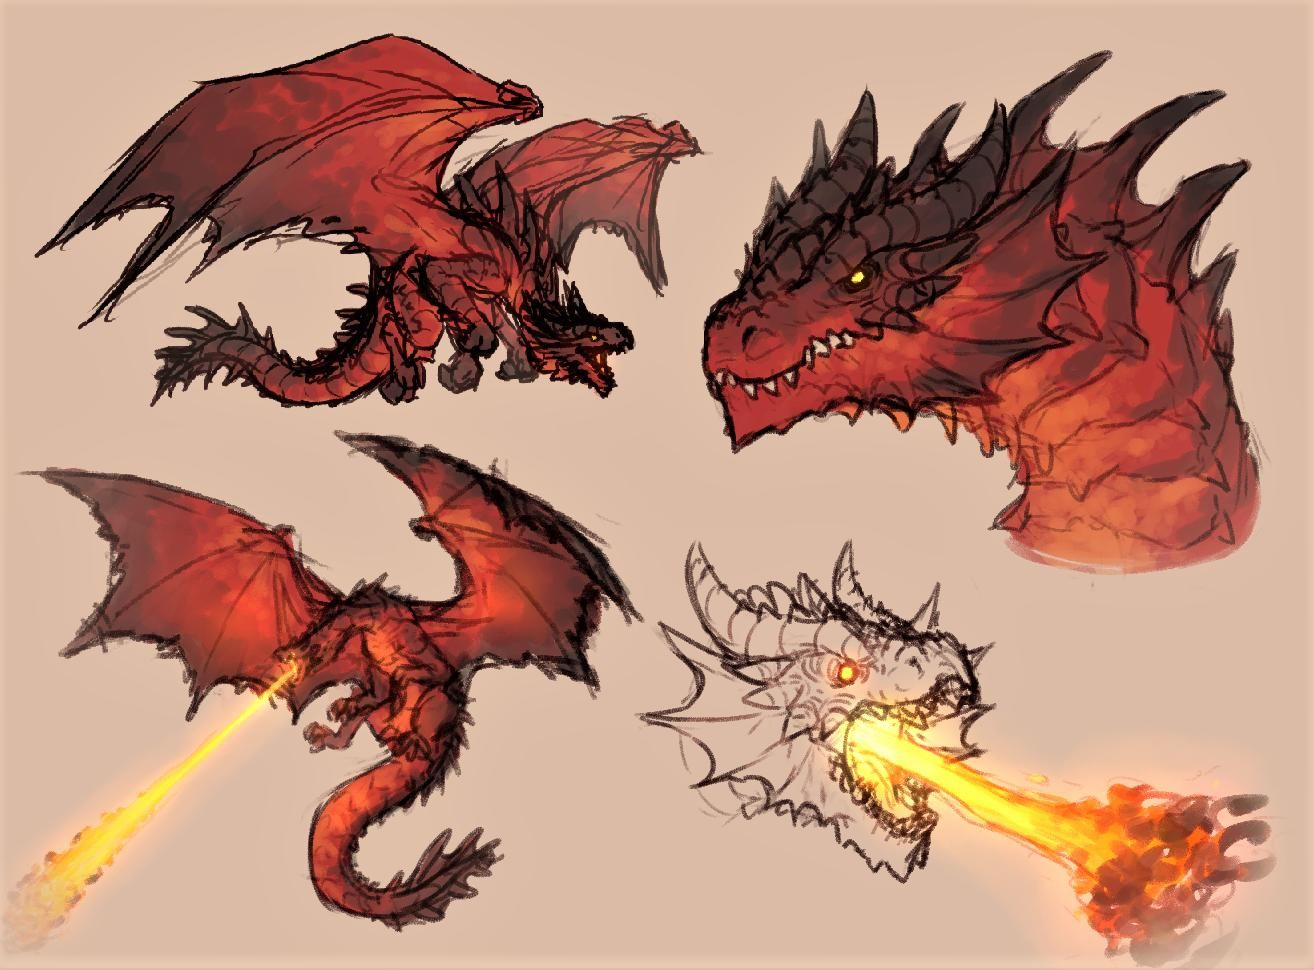 Kroco On Twitter In 2020 Dragon Artwork Dragon Silhouette Mythical Creatures Fantasy